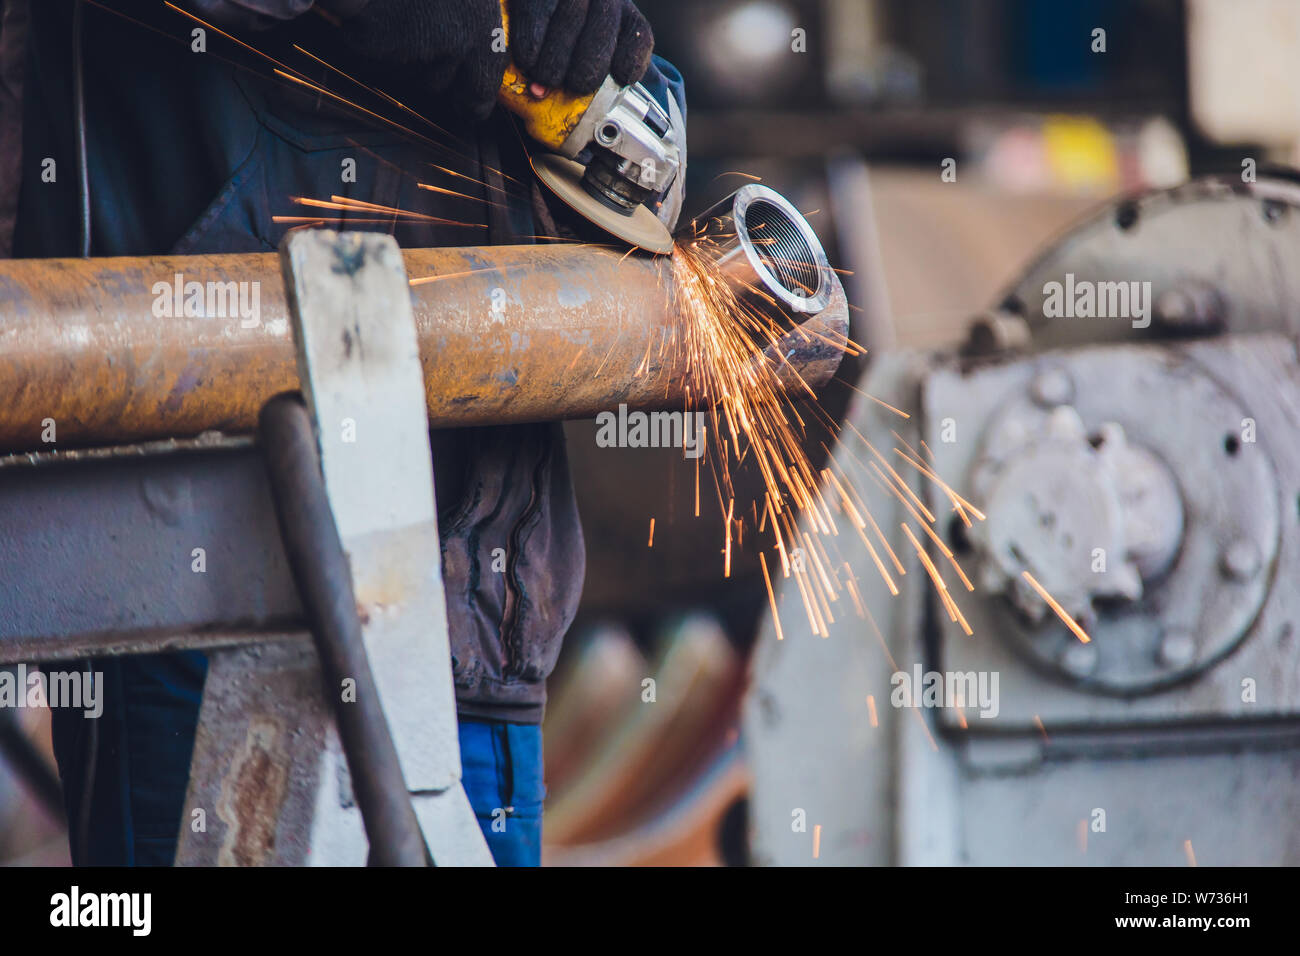 Workers in a foundry grind castings with a grinding machine - Heavy industry workplace. Stock Photo